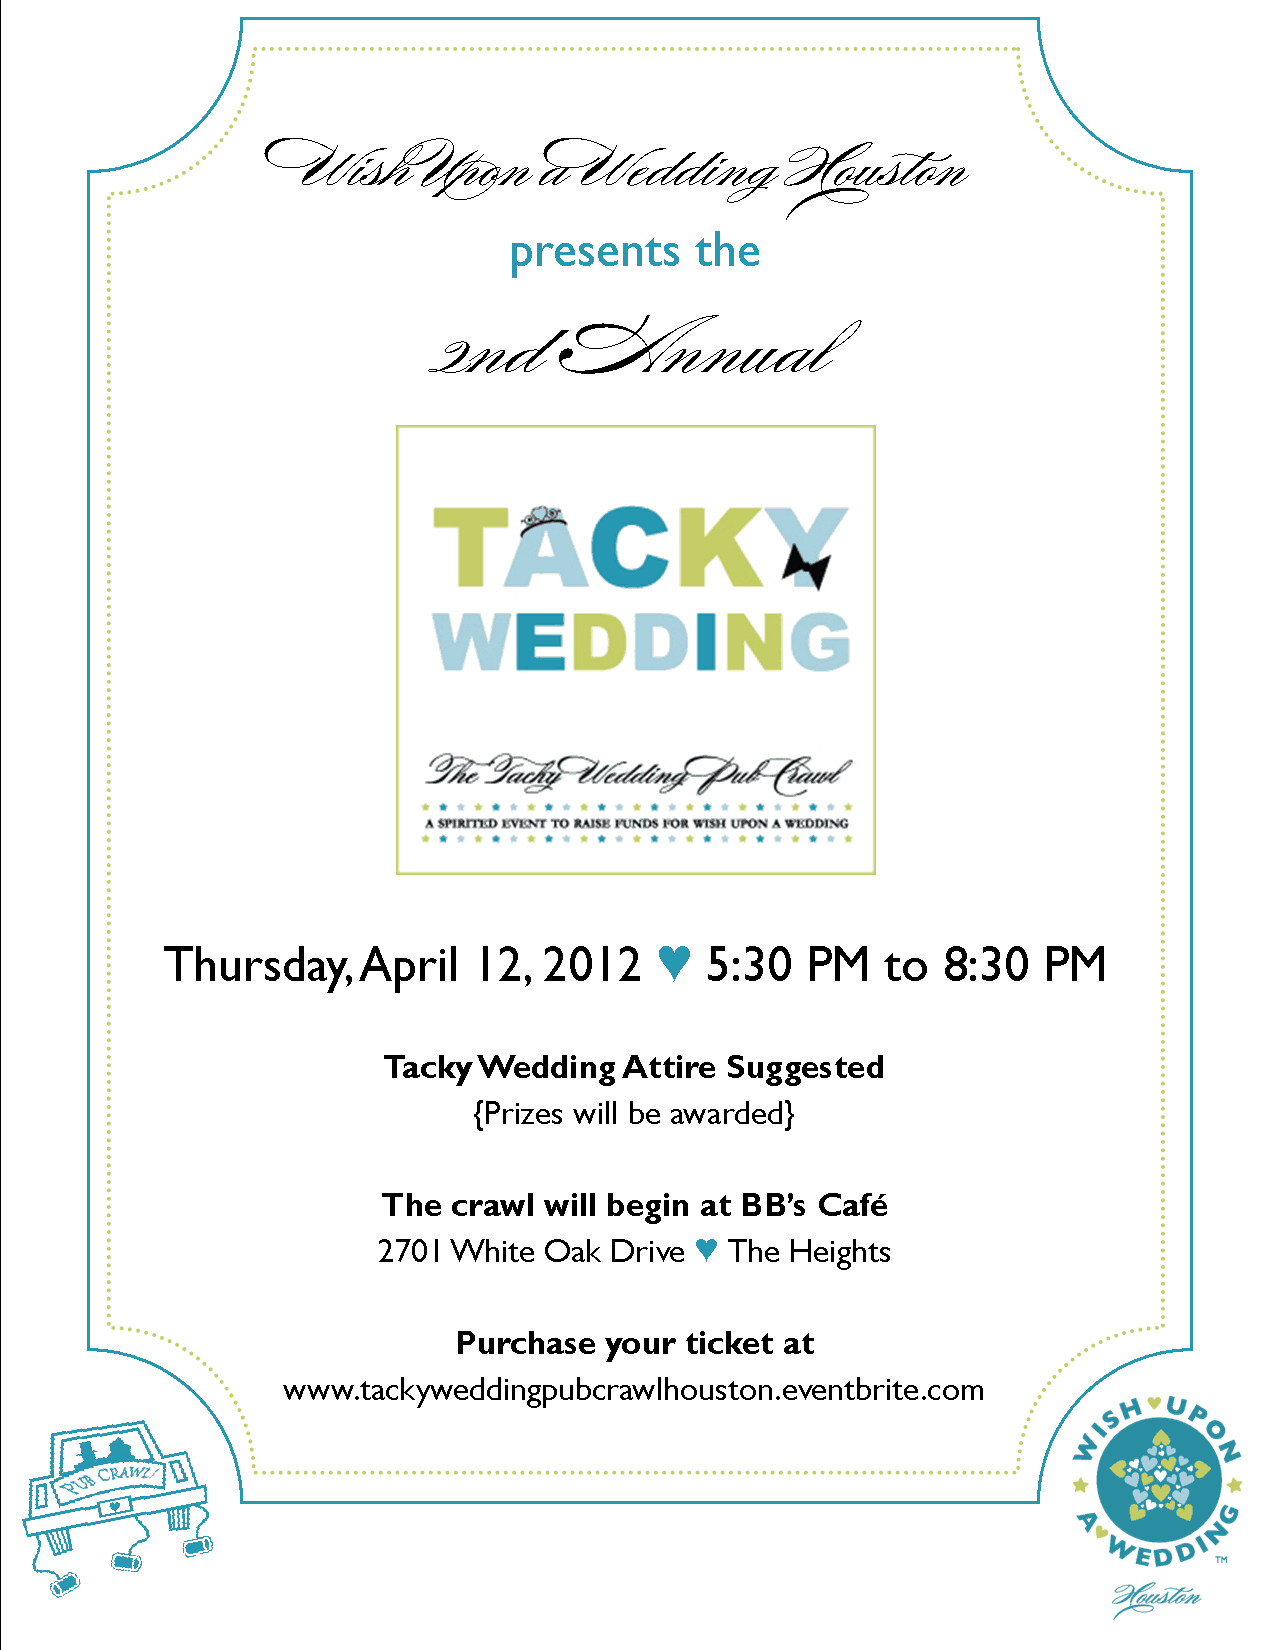 evite wedding invitations tacky mini bridal With are email wedding invitations tacky